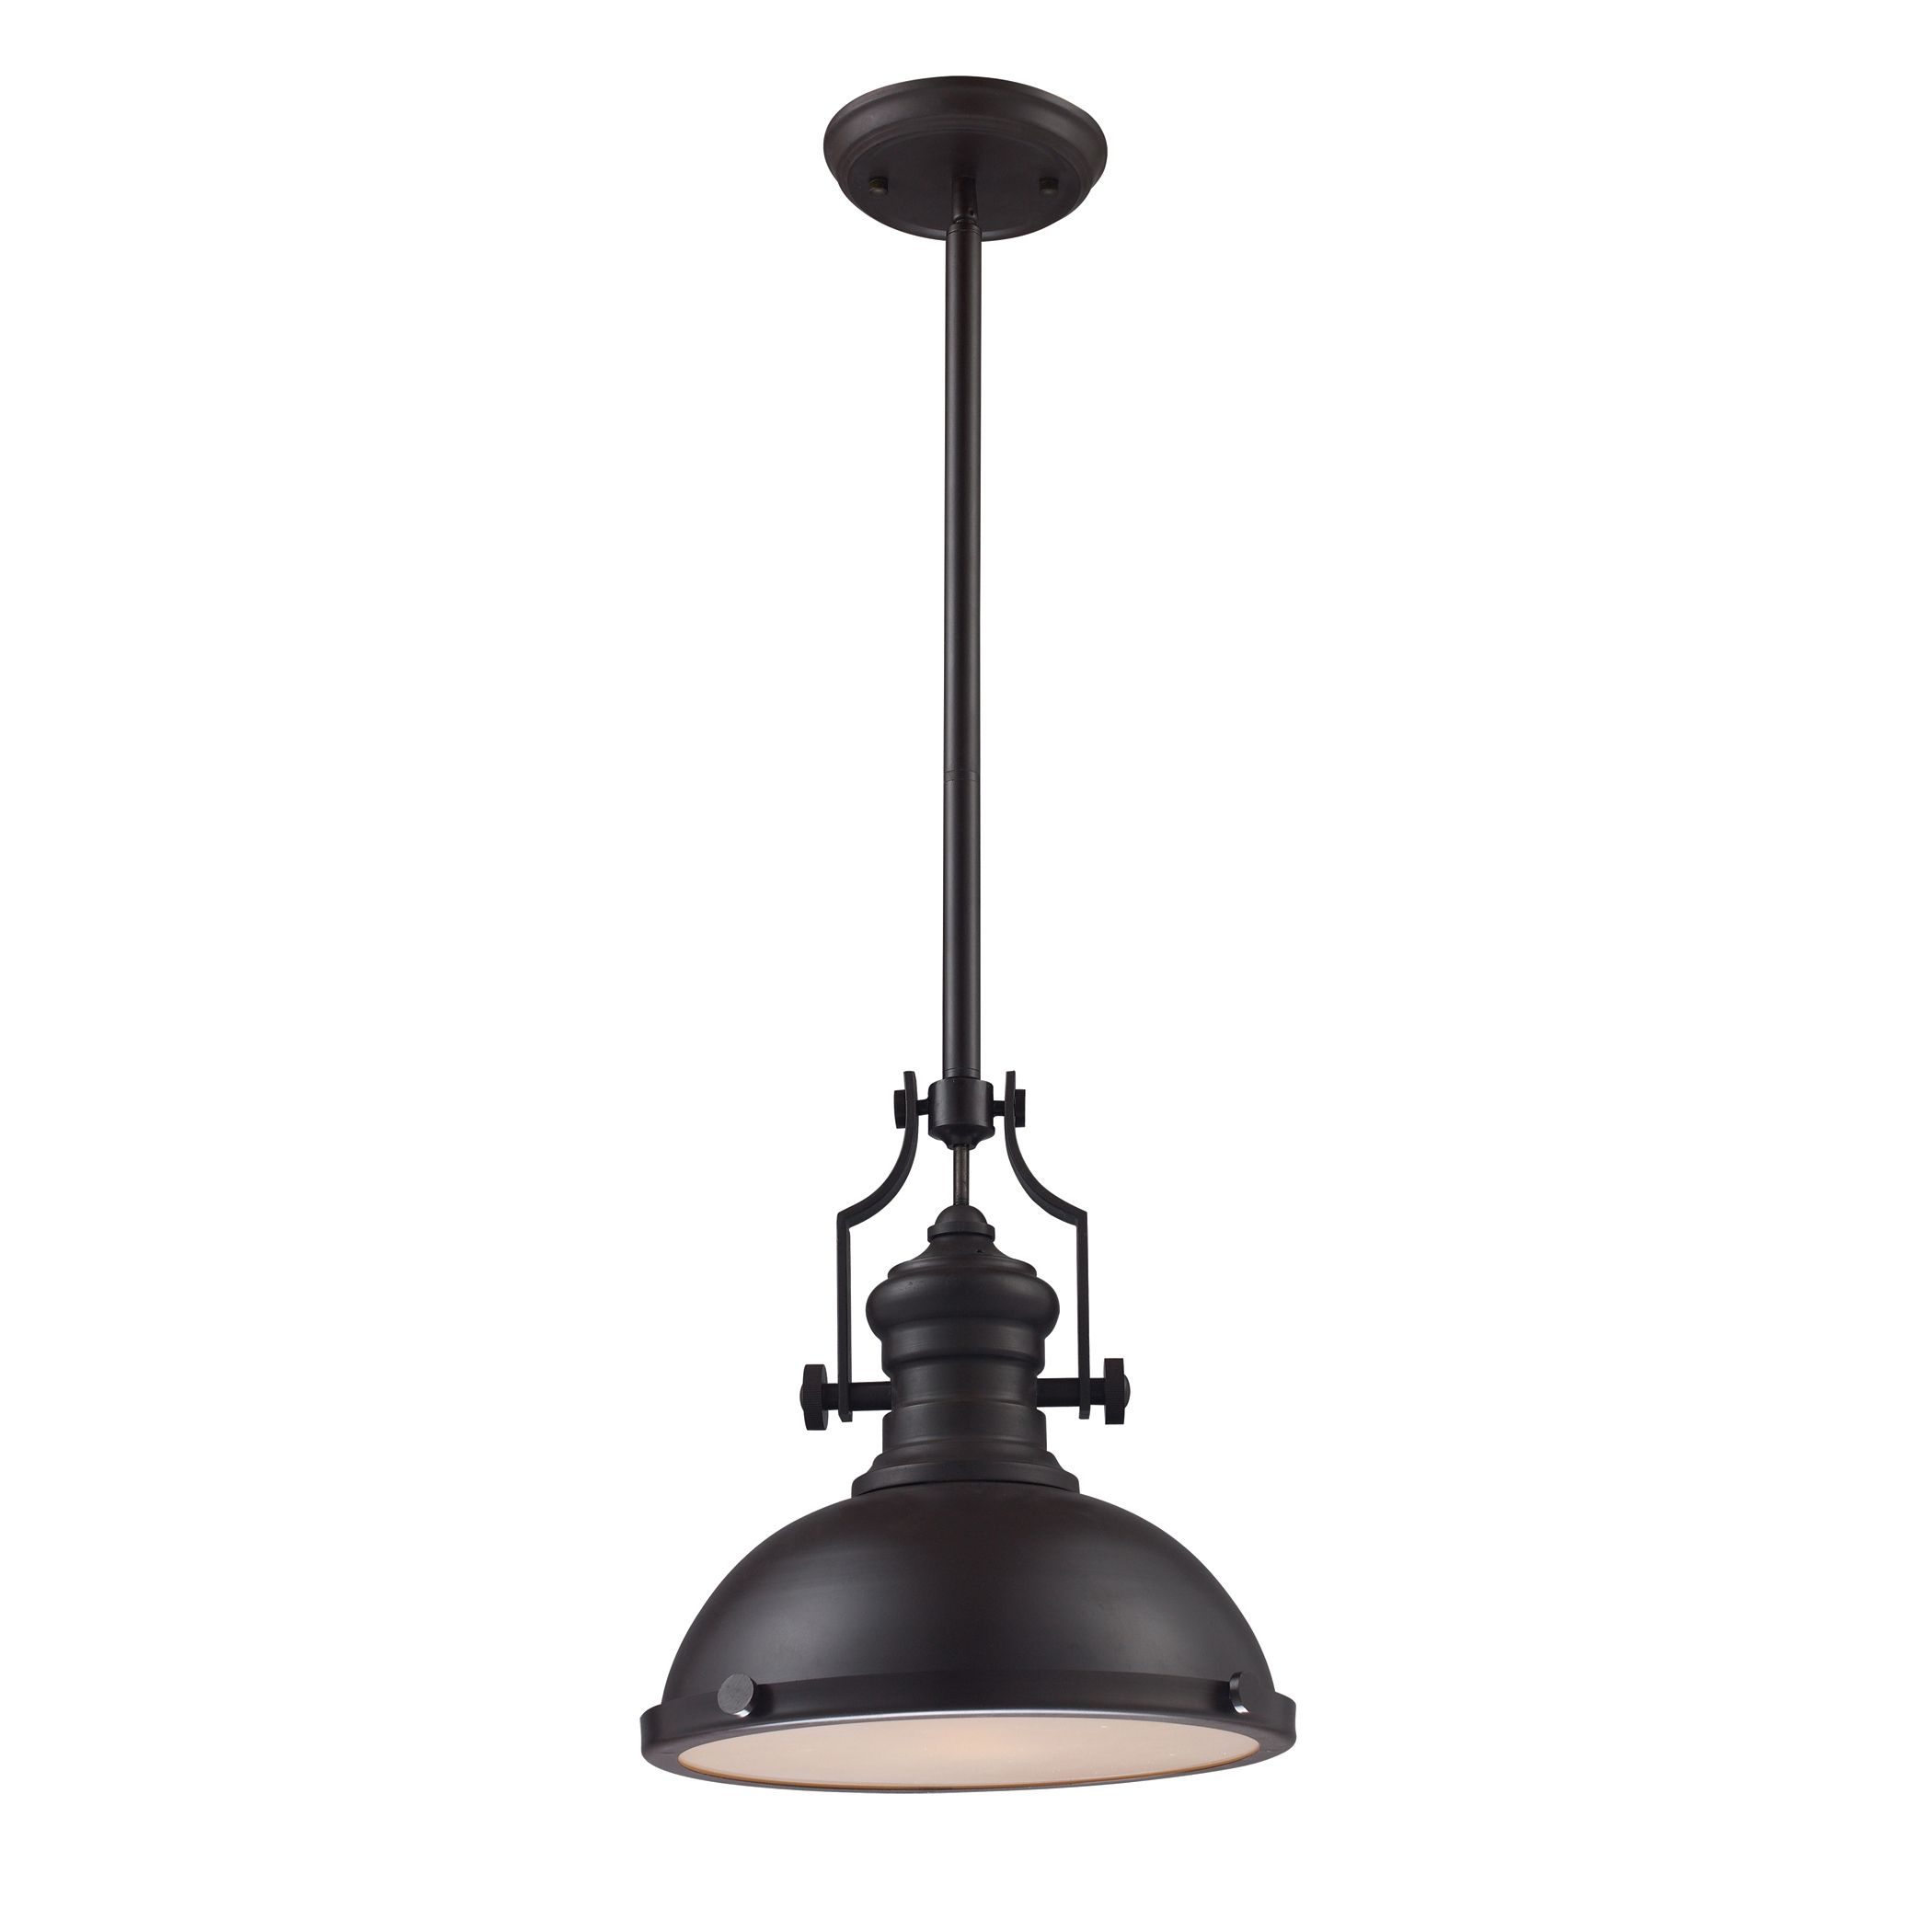 ELK LIGHTING Chadwick Single Light Medium Oiled Bronze Pendant (Chadwick Oiled  Bronze Pendant)